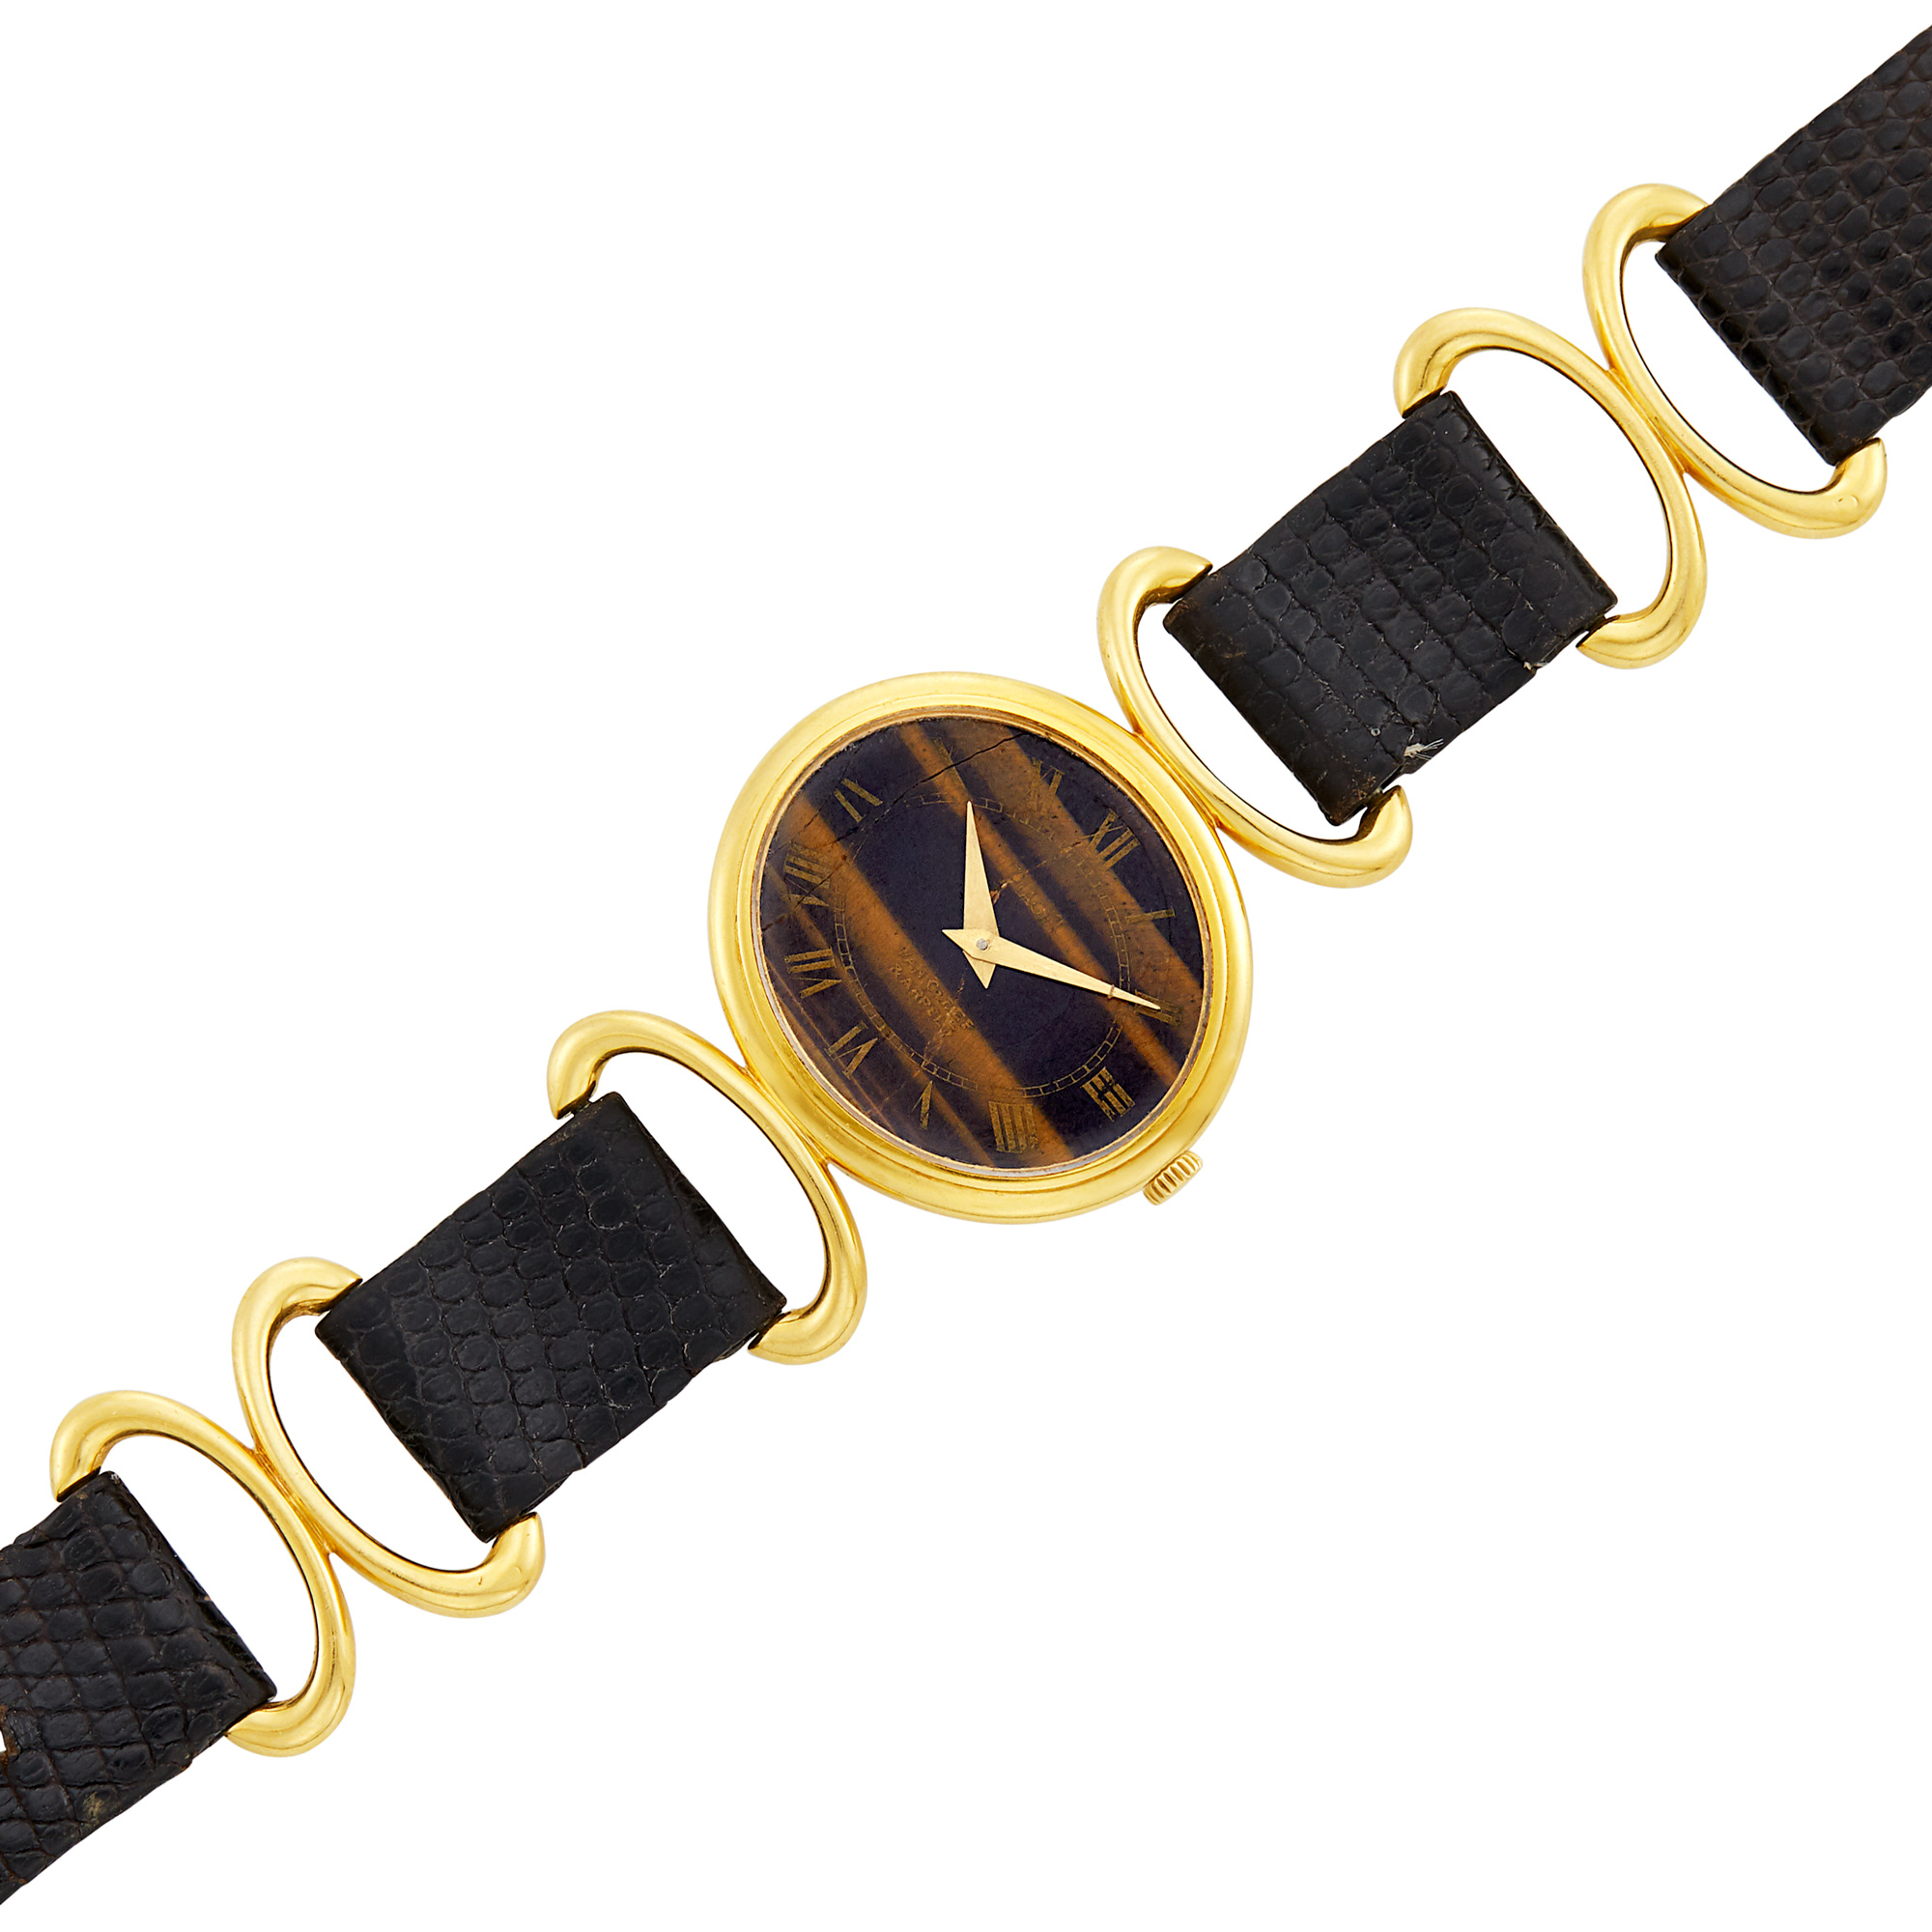 Lot image - Gold and Tigers Eye Wristwatch, Piaget, Retailed by Van Cleef & Arpels, France